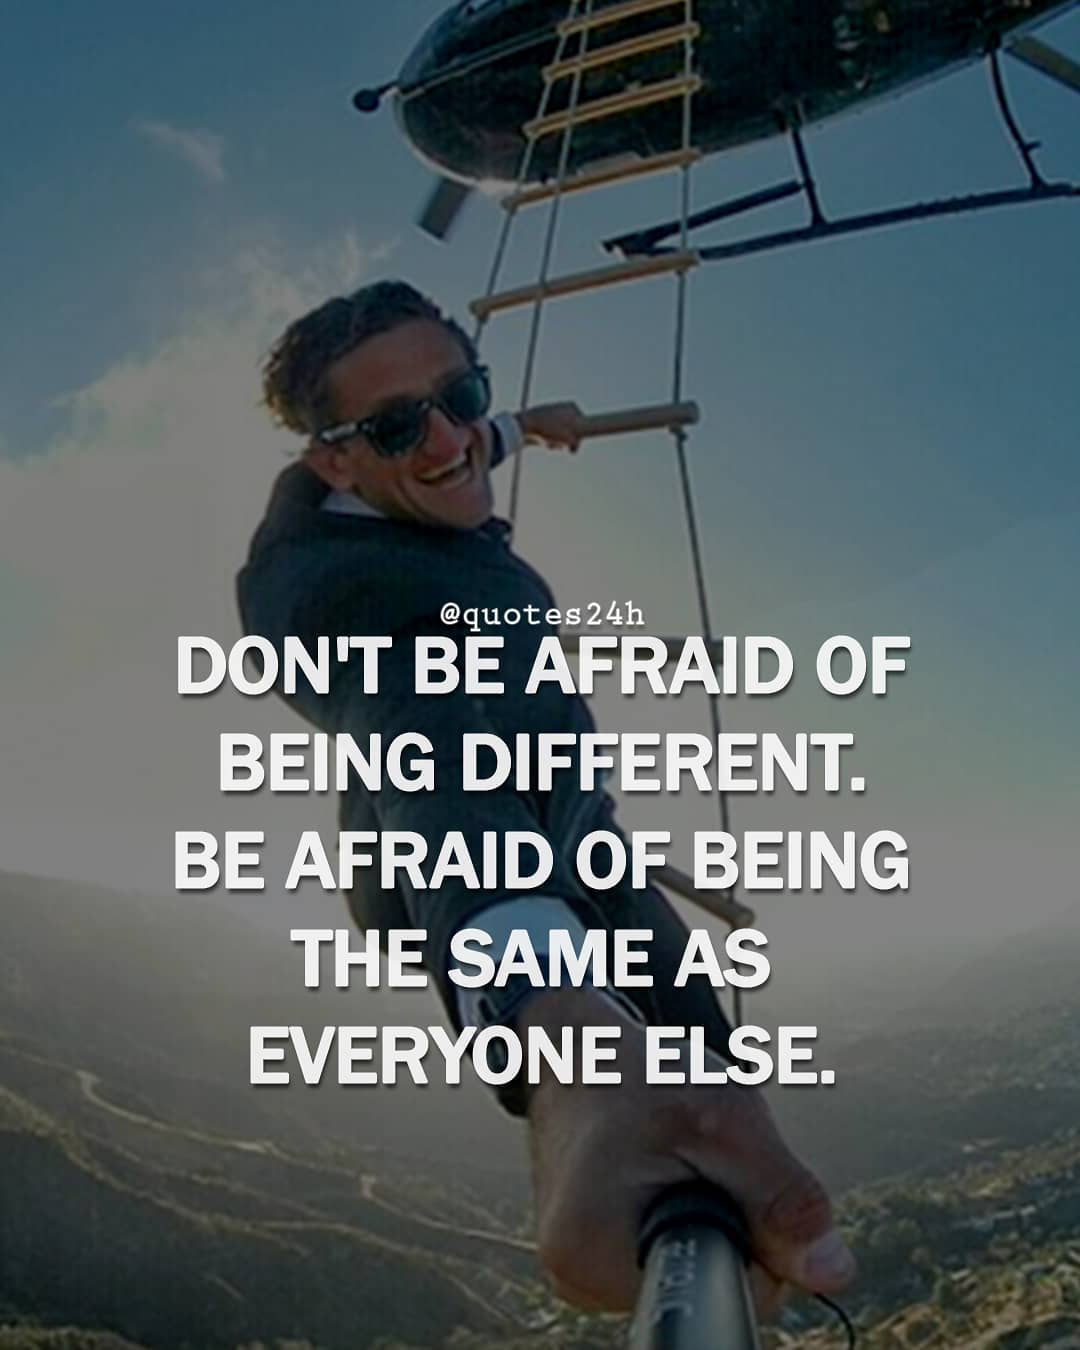 "DON'T BE AFRAID OF BEING DIFFERENT. BE AFRAID OF BEING THE SAME AS EVERYONE ELSE. ""Quotes24h"" [716×894]"